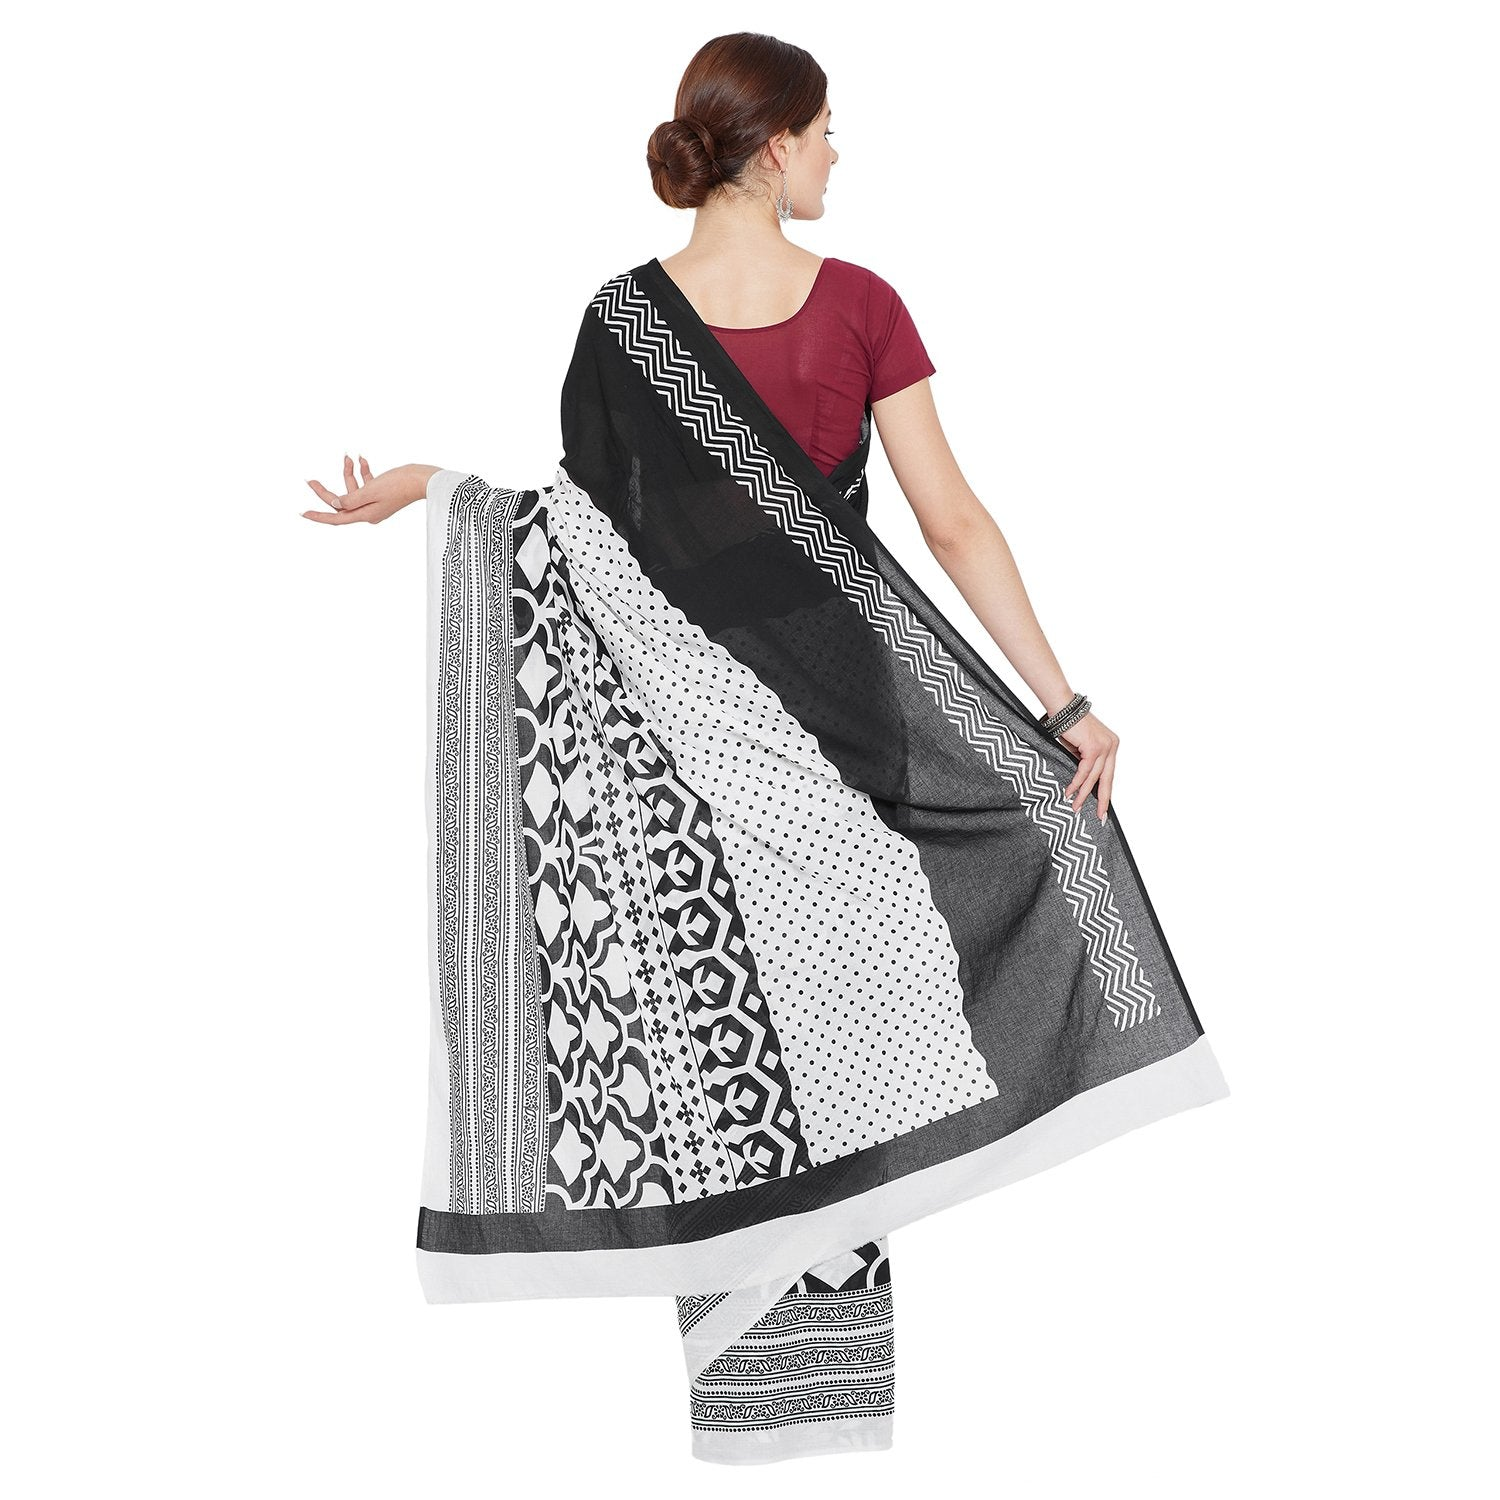 Black & White Hand Block Print Handcrafted Cotton Saree-Saree-Kalakari India-RDSNSA0123-Cotton, Geographical Indication, Hand Blocks, Hand Crafted, Heritage Prints, Sarees, Sustainable Fabrics-[Linen,Ethnic,wear,Fashionista,Handloom,Handicraft,Indigo,blockprint,block,print,Cotton,Chanderi,Blue, latest,classy,party,bollywood,trendy,summer,style,traditional,formal,elegant,unique,style,hand,block,print, dabu,booti,gift,present,glamorous,affordable,collectible,Sari,Saree,printed, holi, Diwali, birth